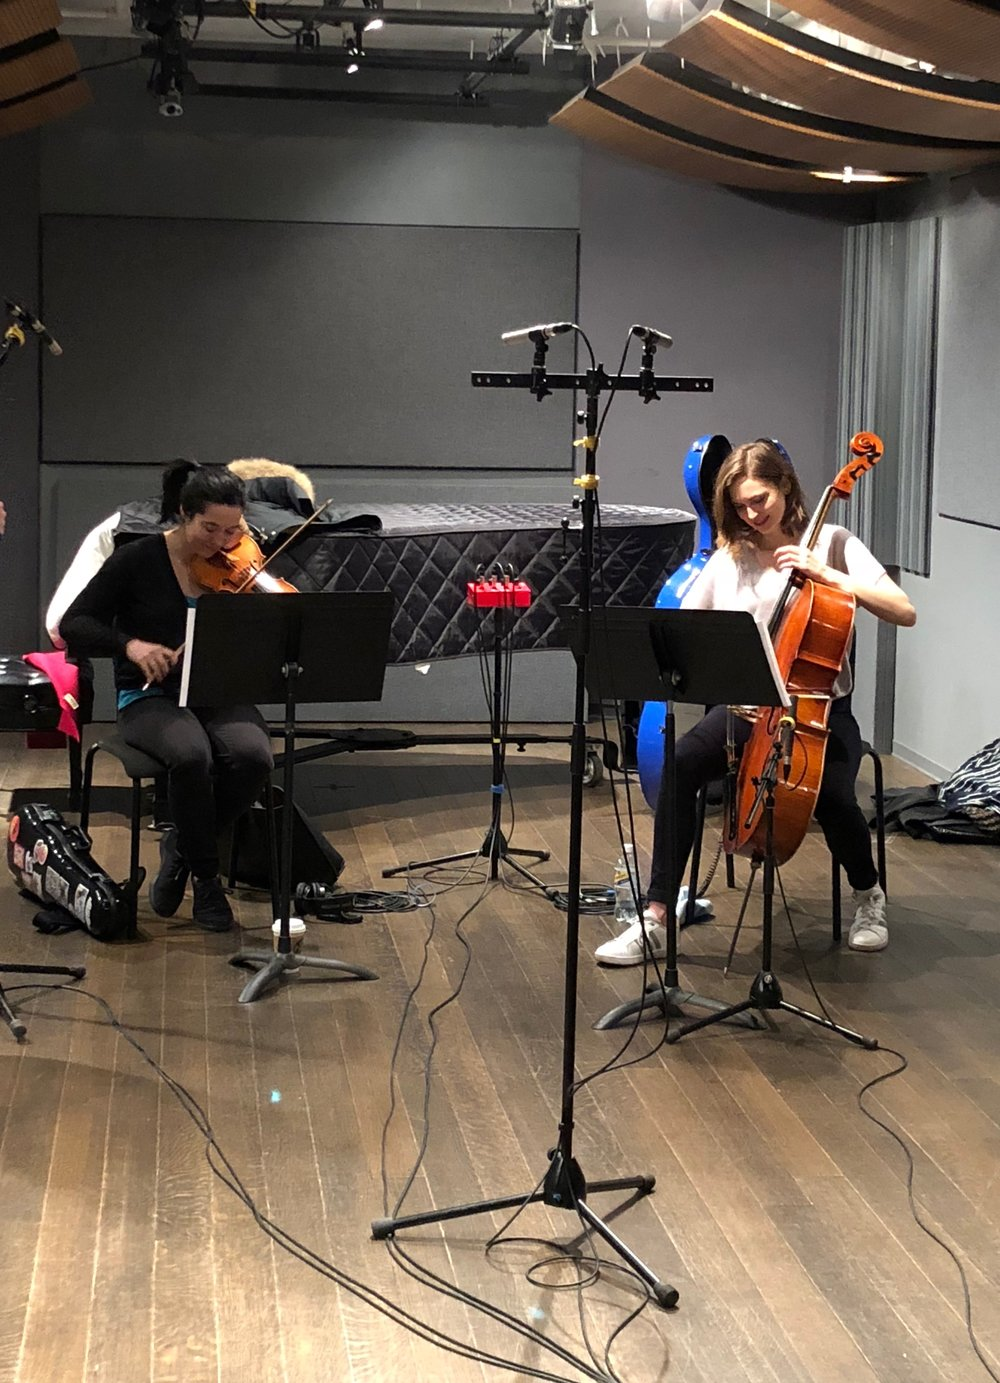 Patti Kilroy (violin) and Mariel Roberts (cello) recording the score at Dolan Studios for the MasterCard Gold Card commercial.